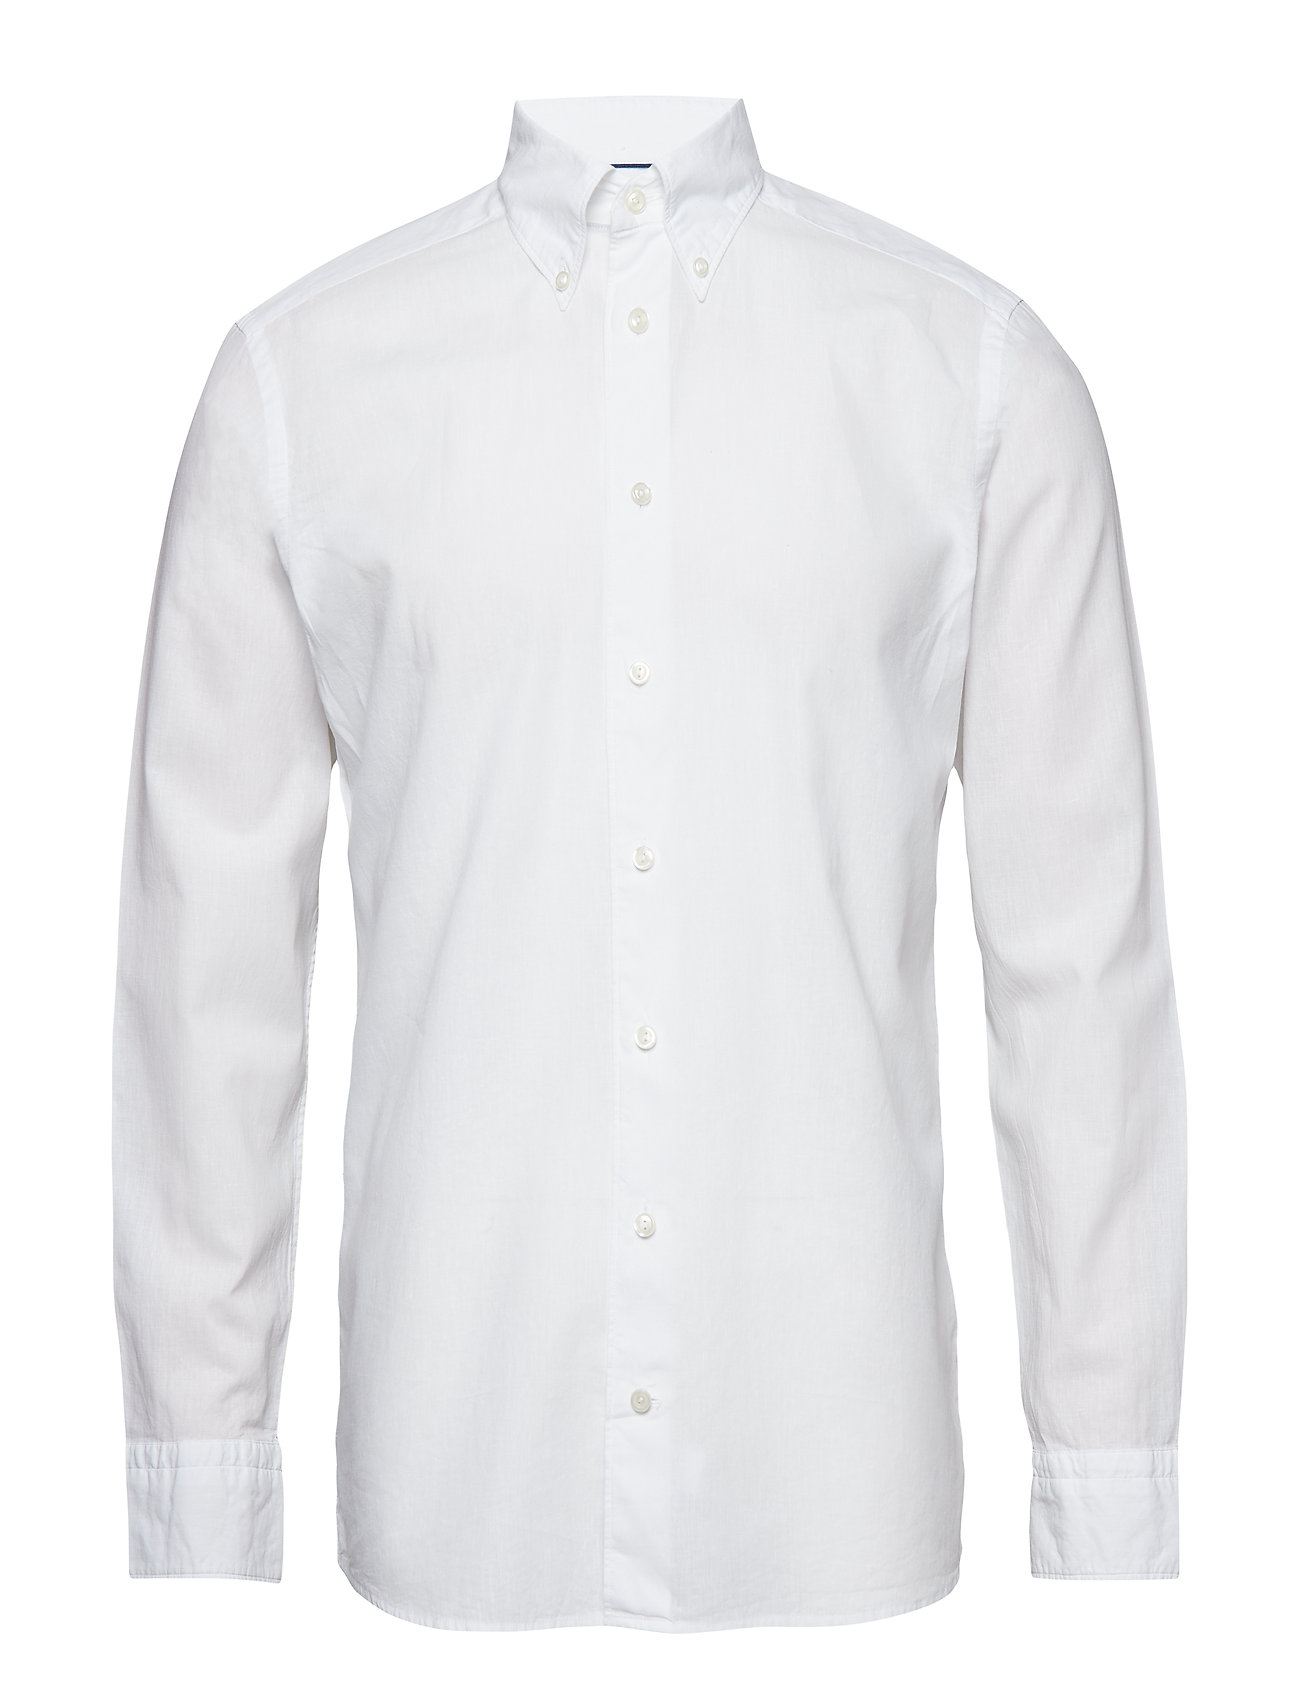 Eton White Cotton & Linen Shirt - WHITE